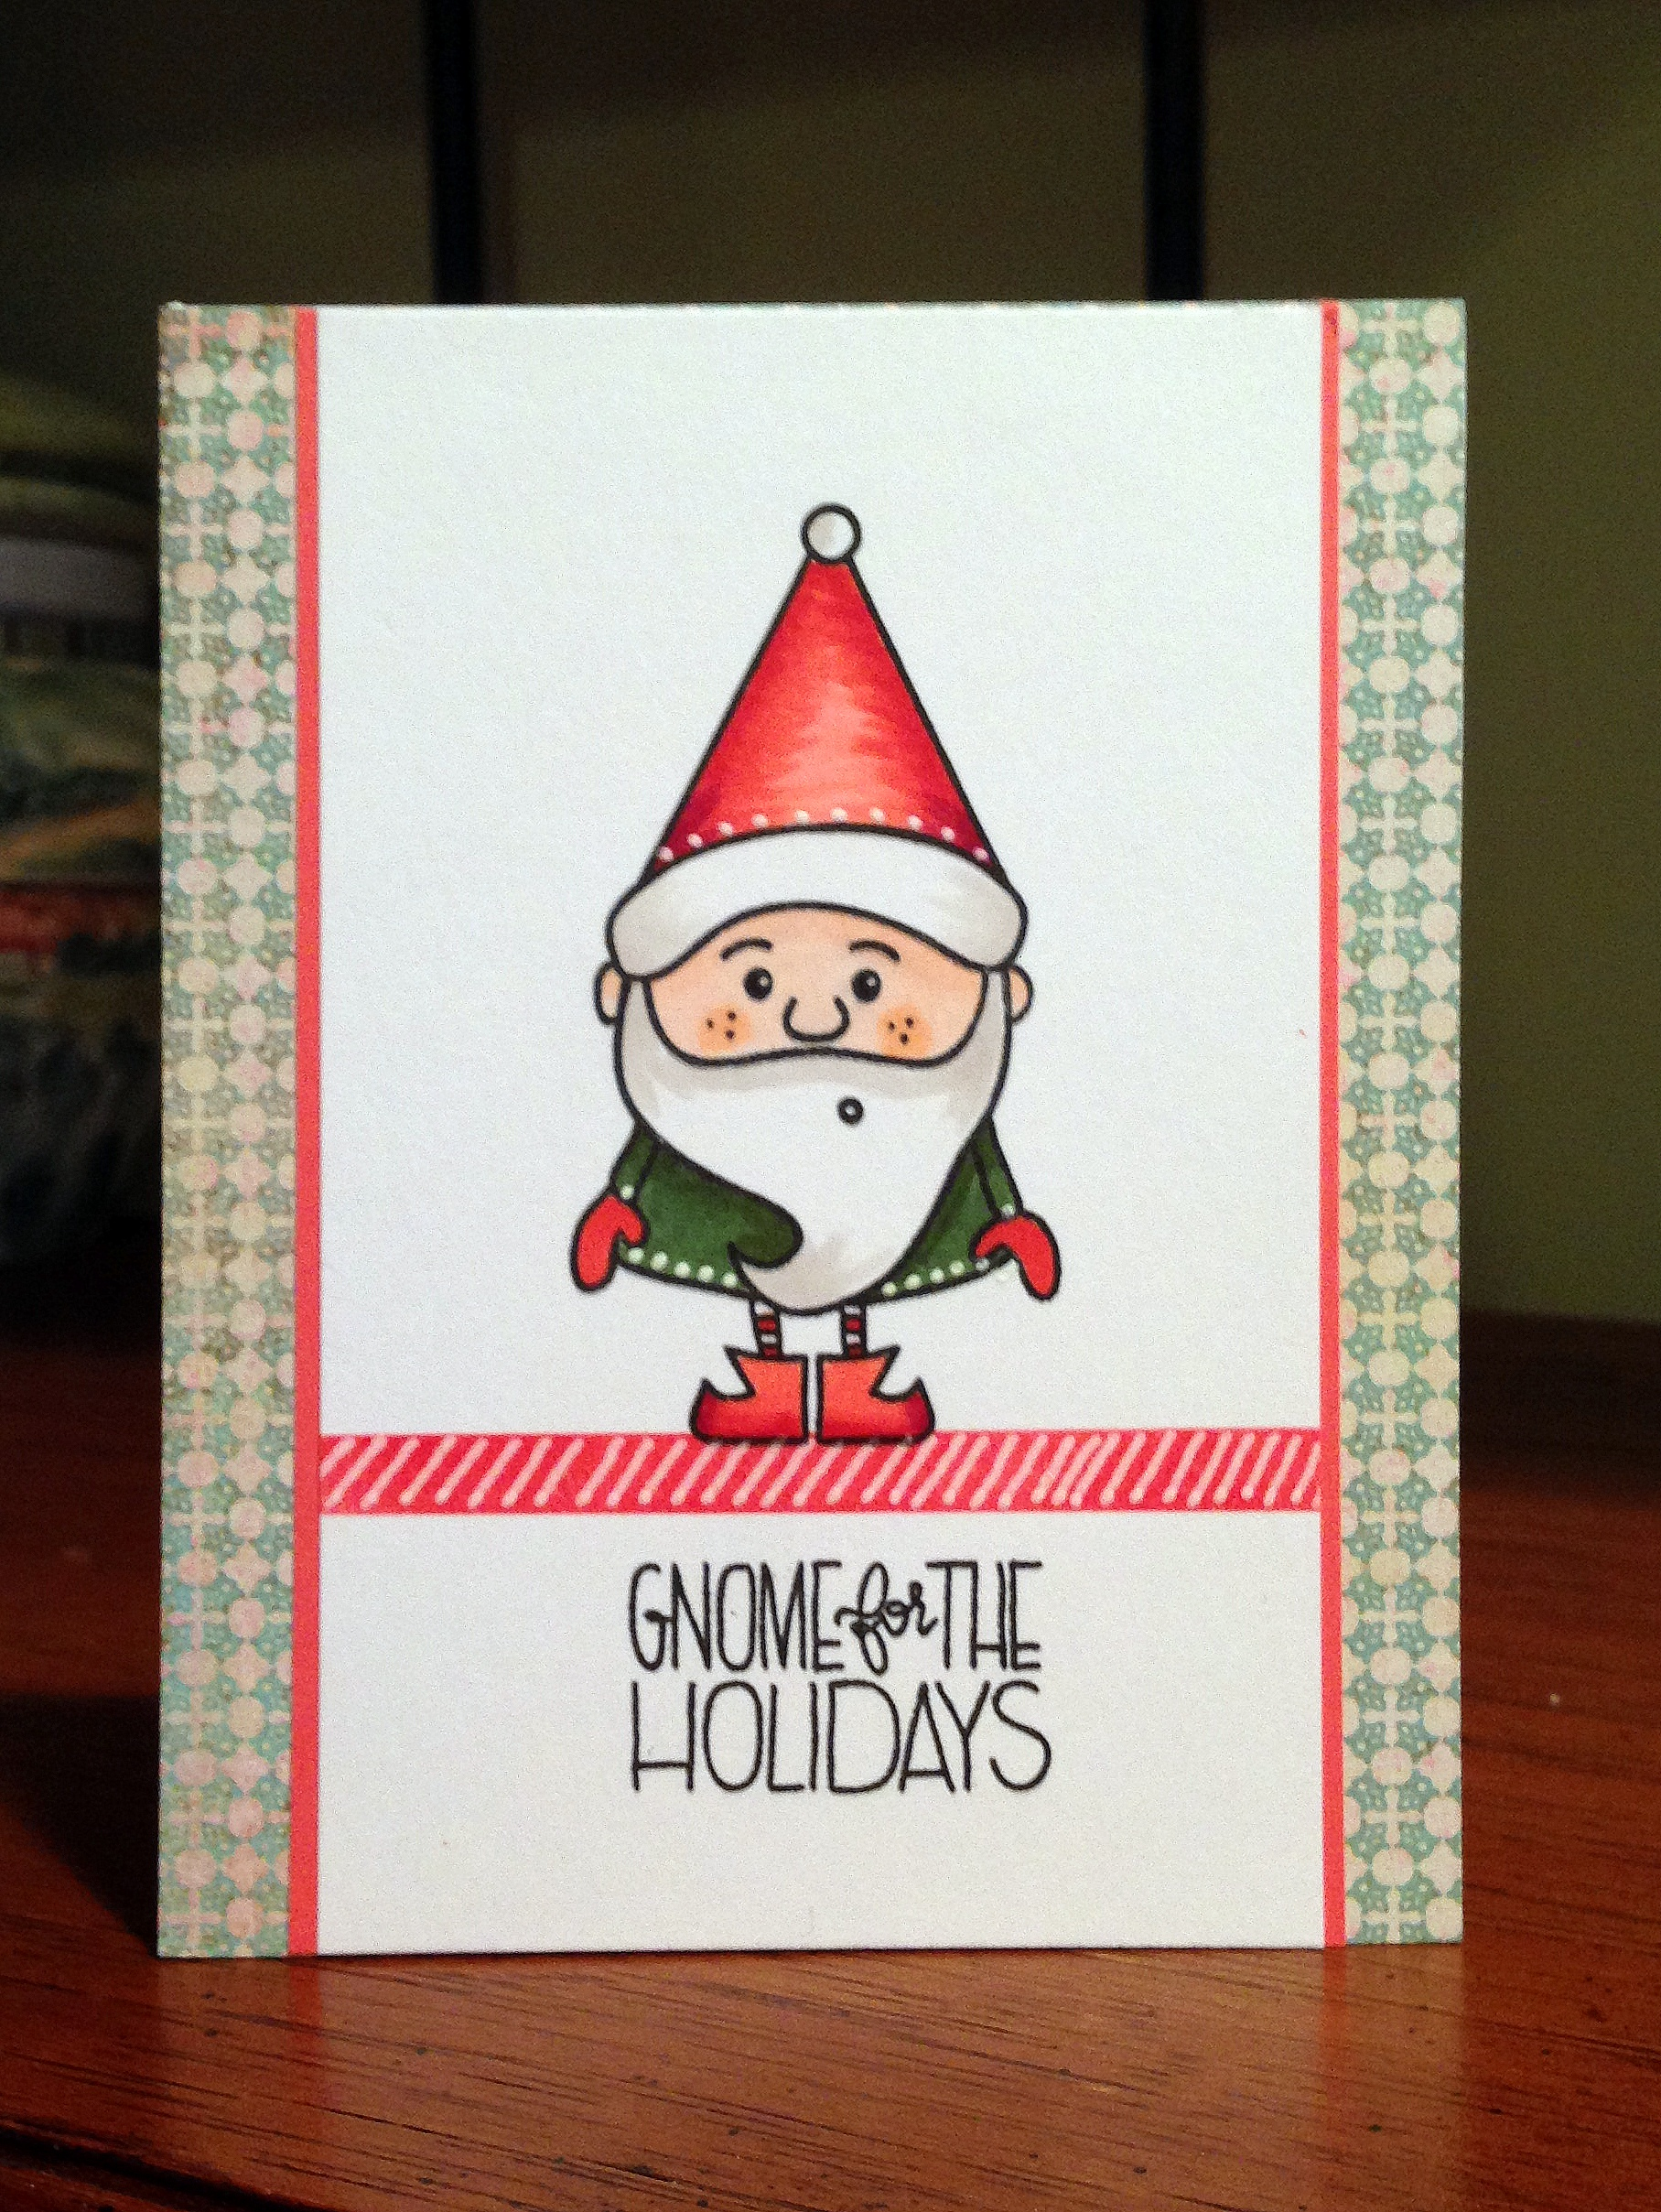 This Little Card of Mine: Gnome for the holidays